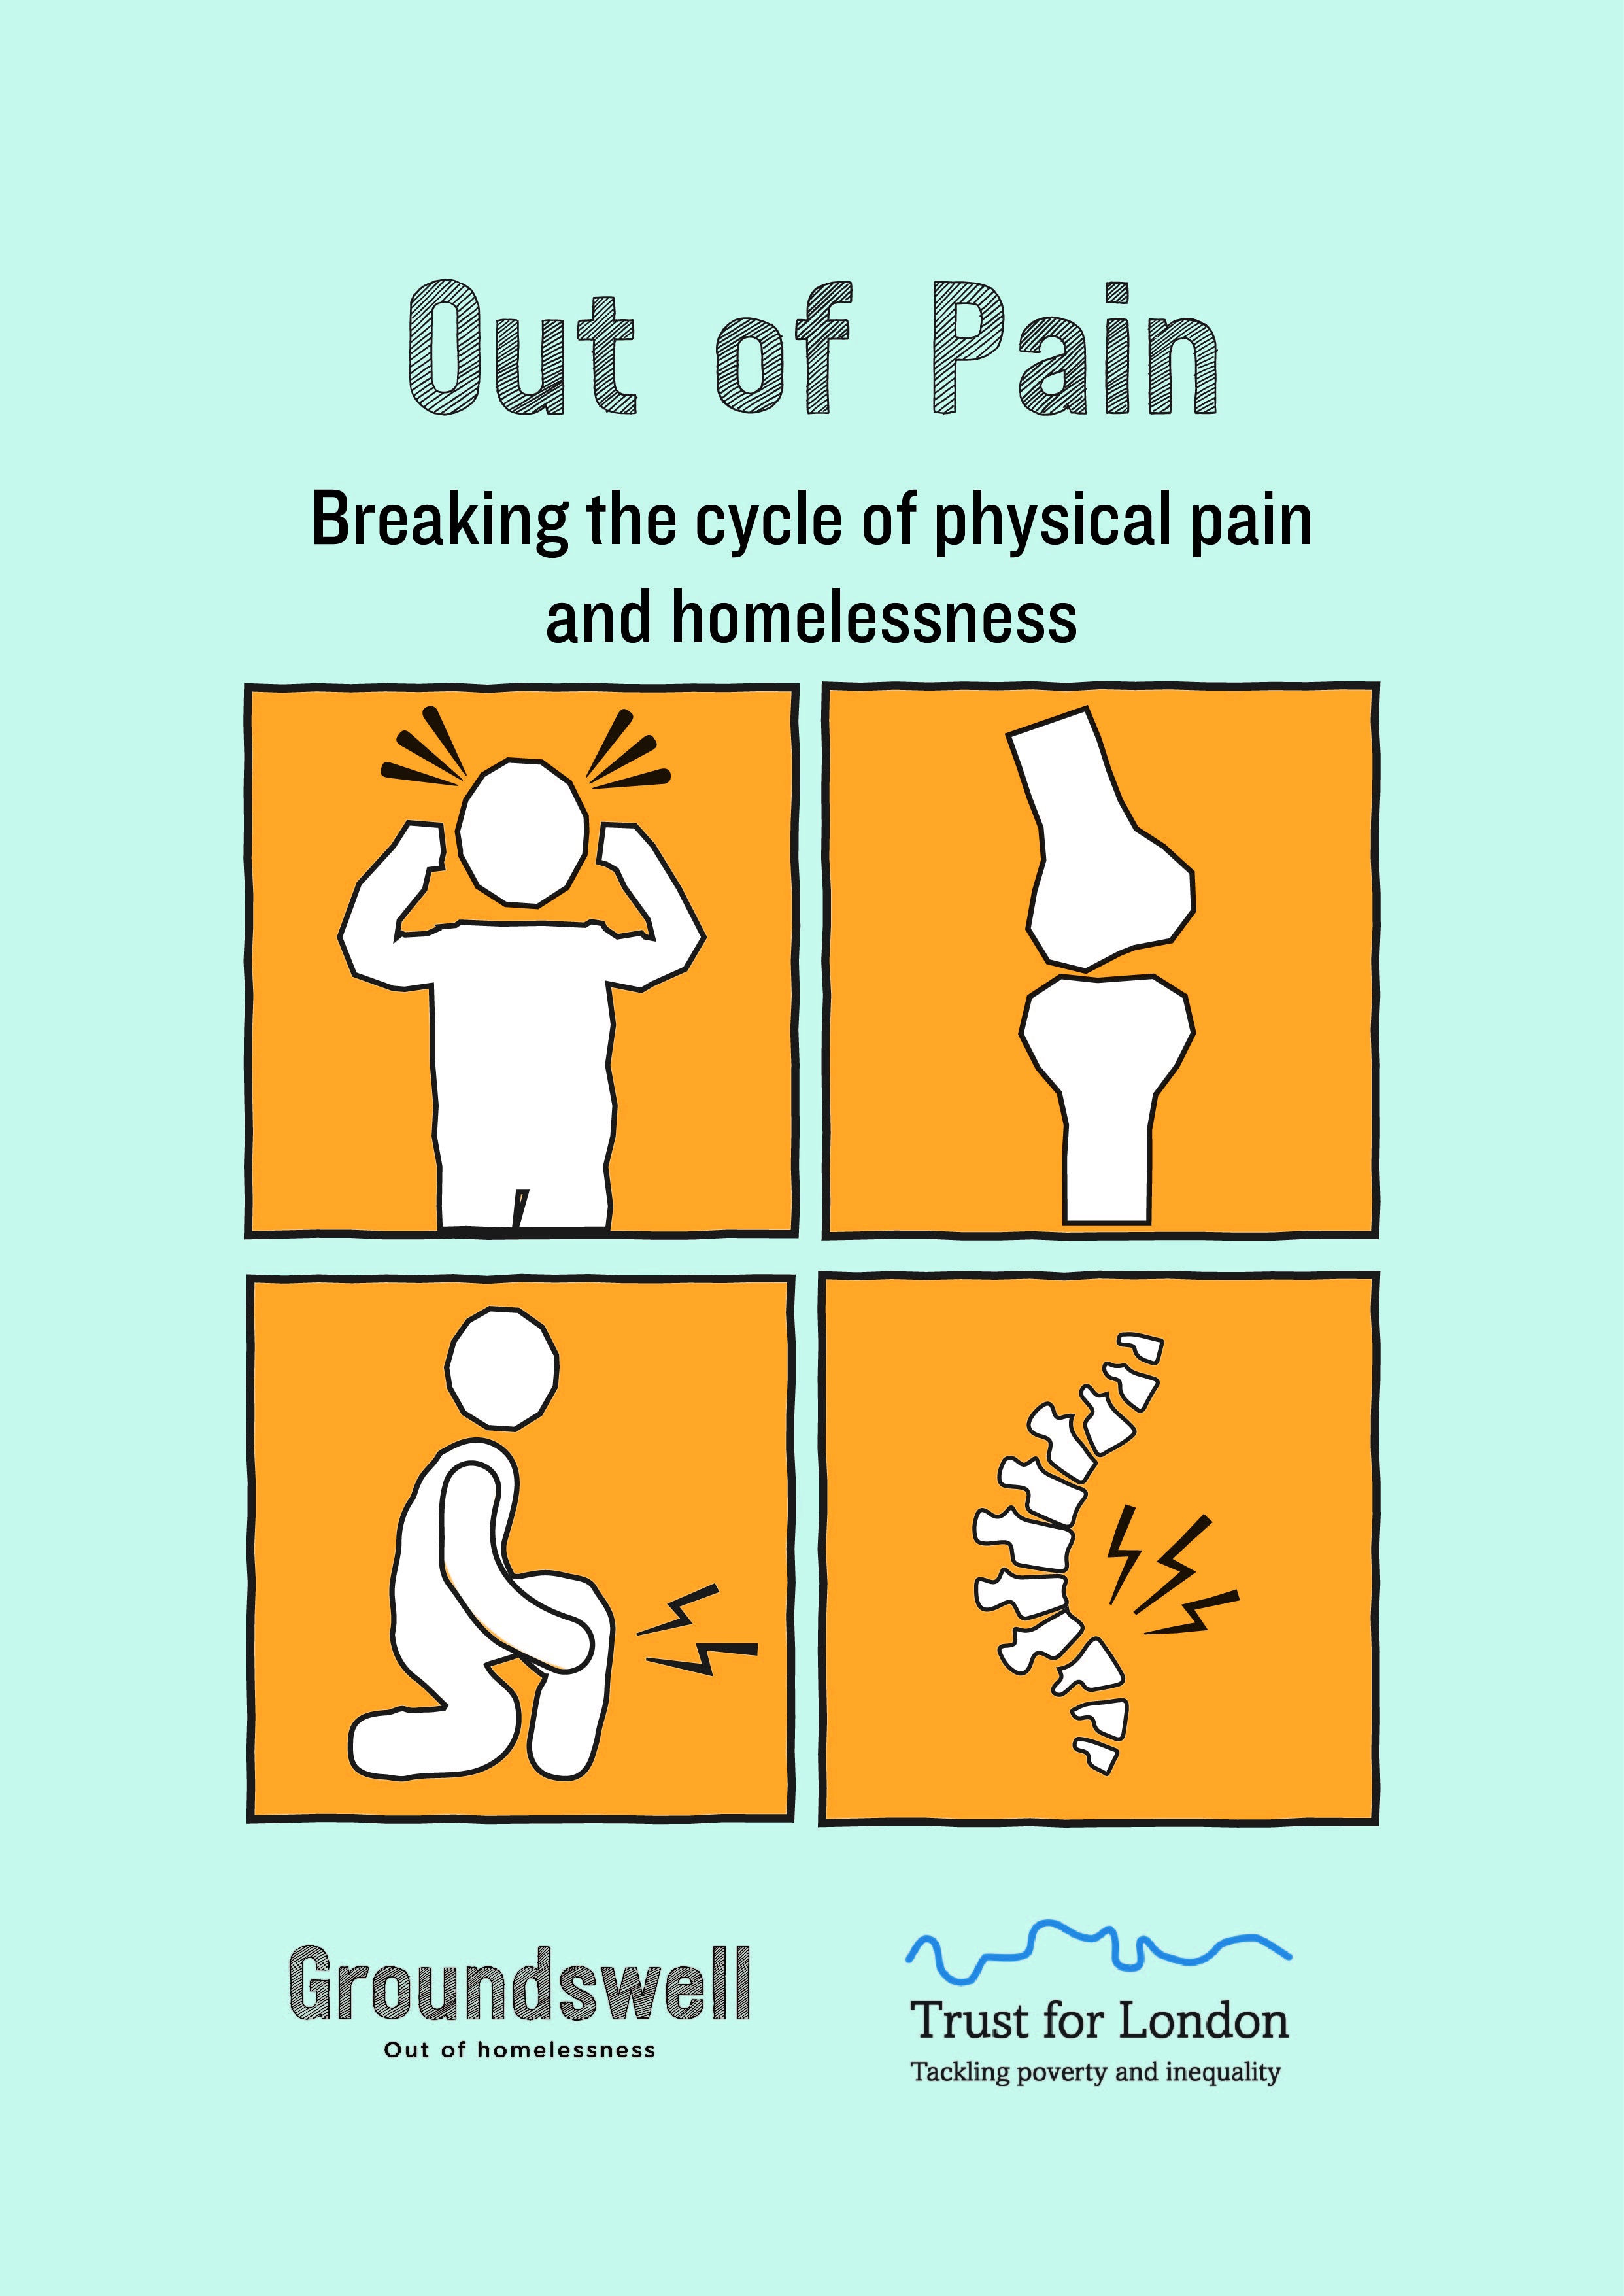 The front cover of the out of pain research report